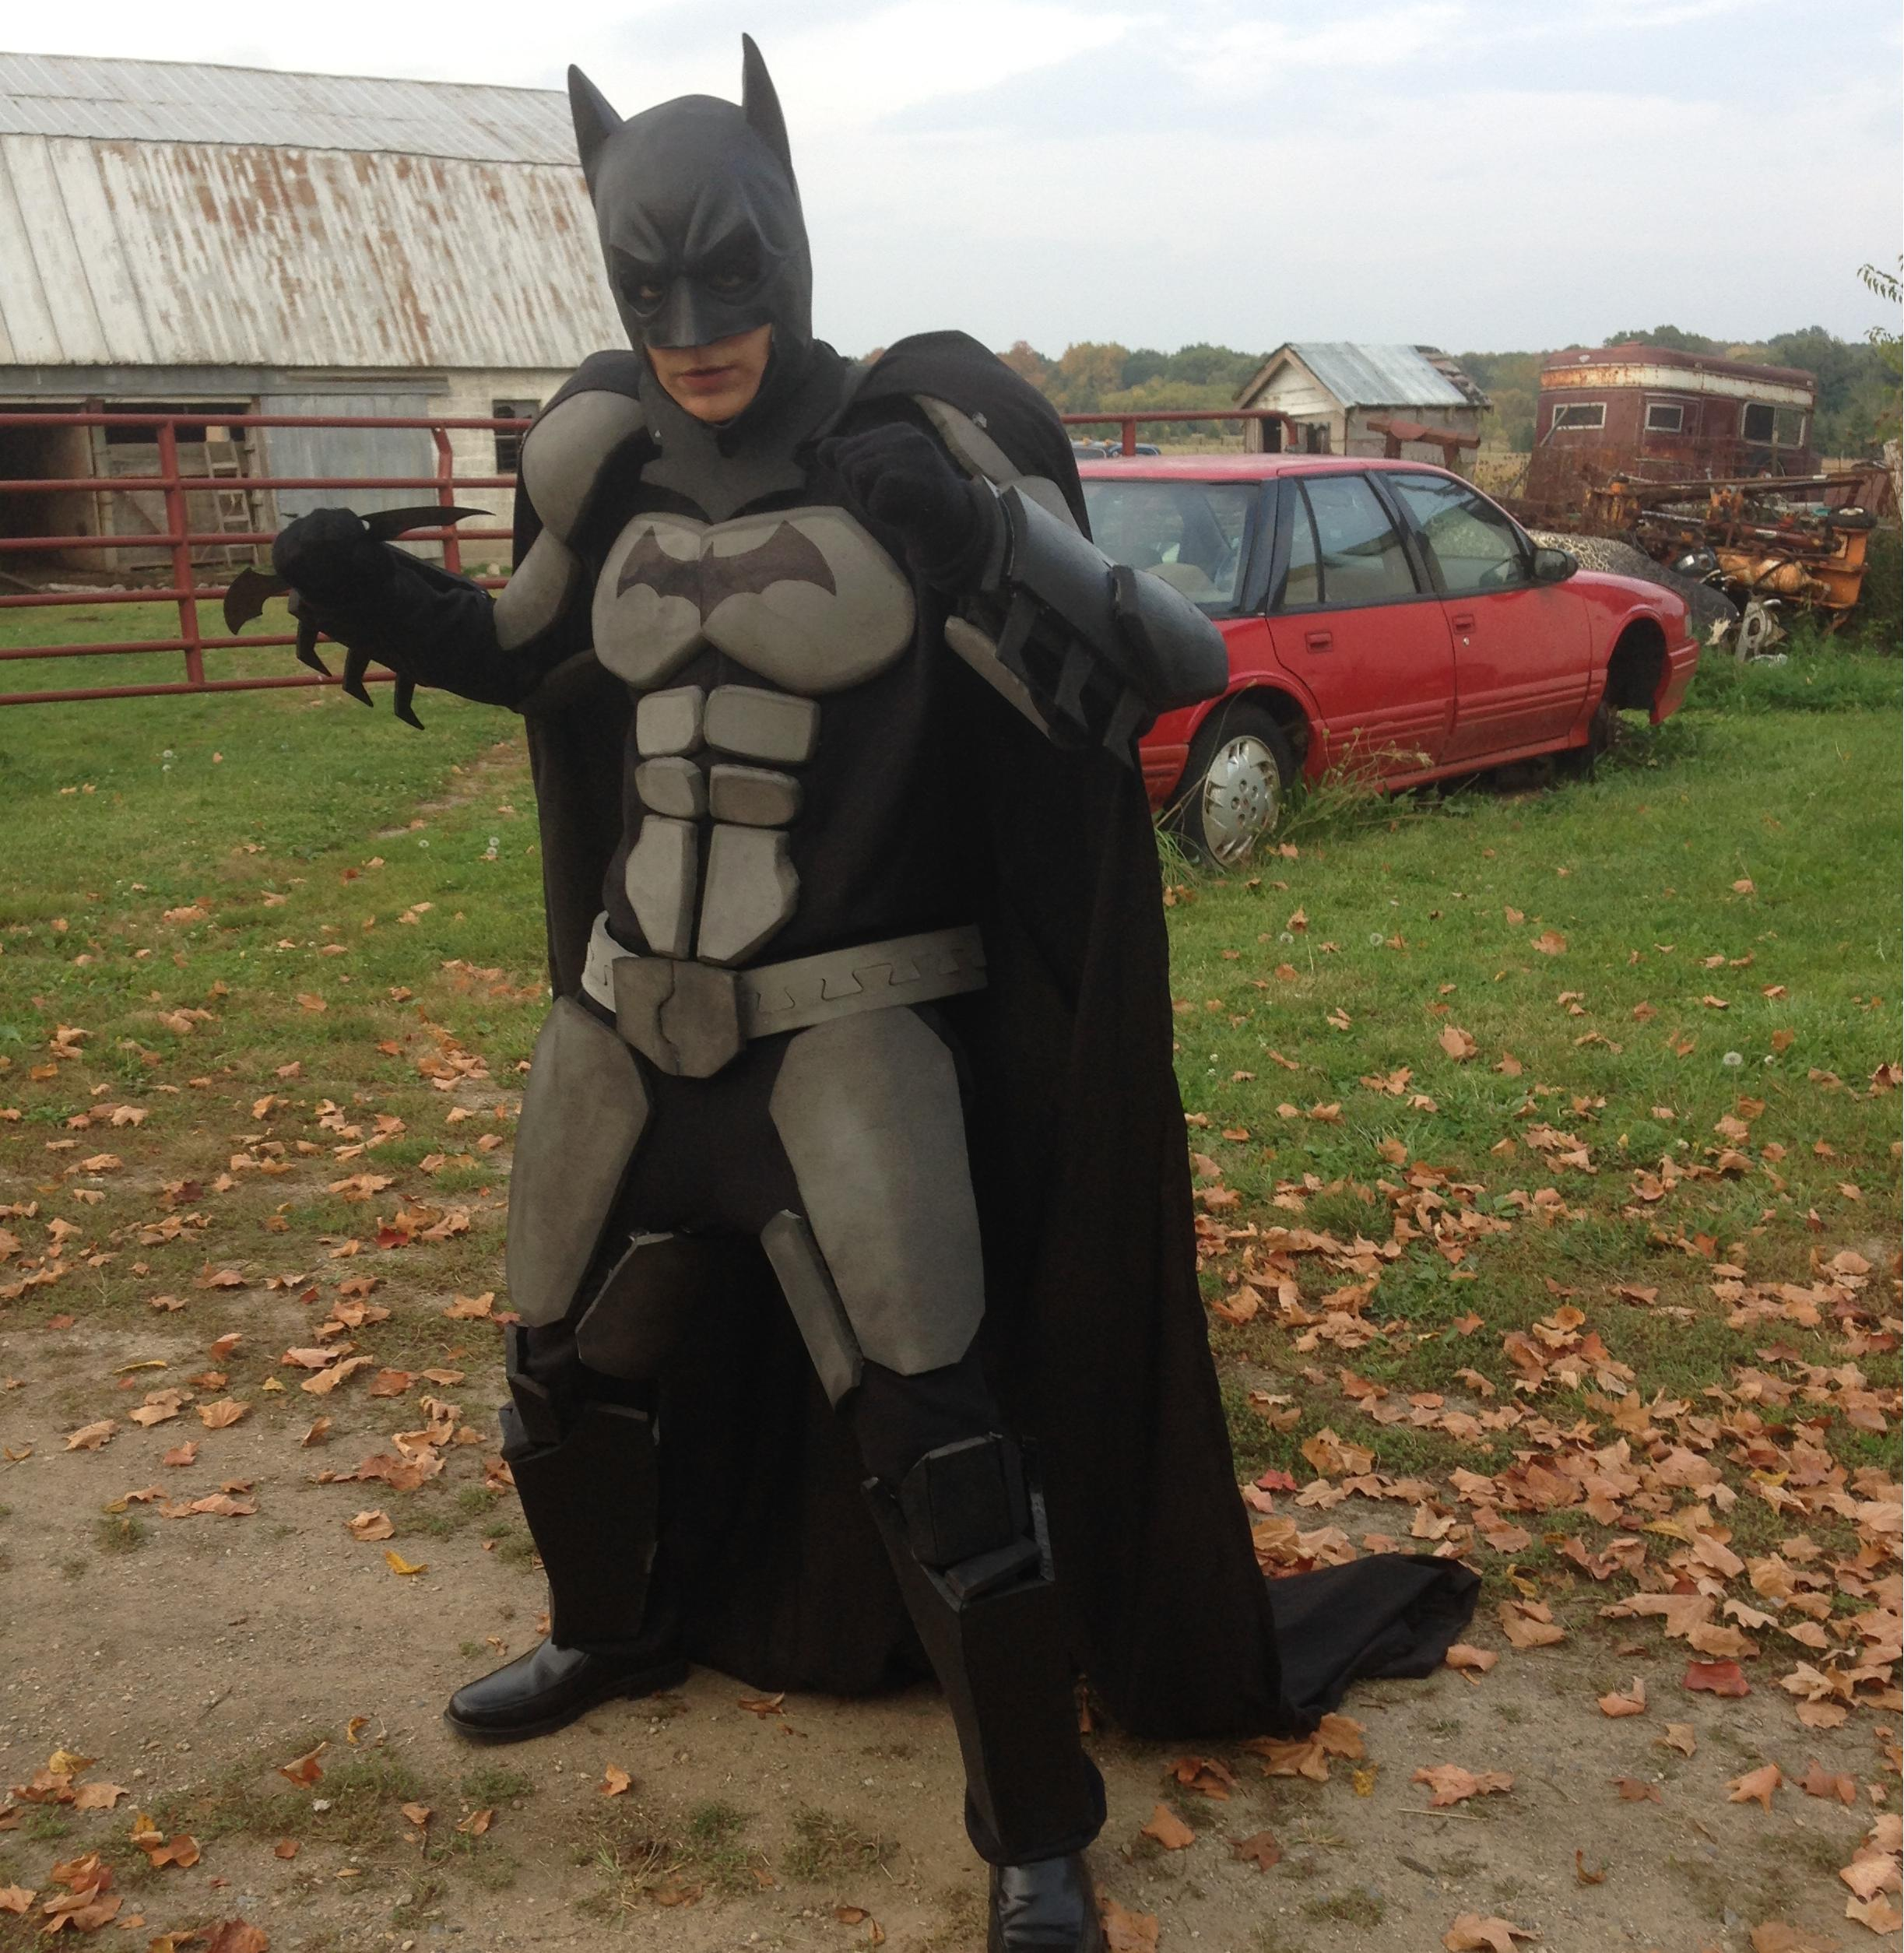 How To Make a Batman Costume (eva foam armor)